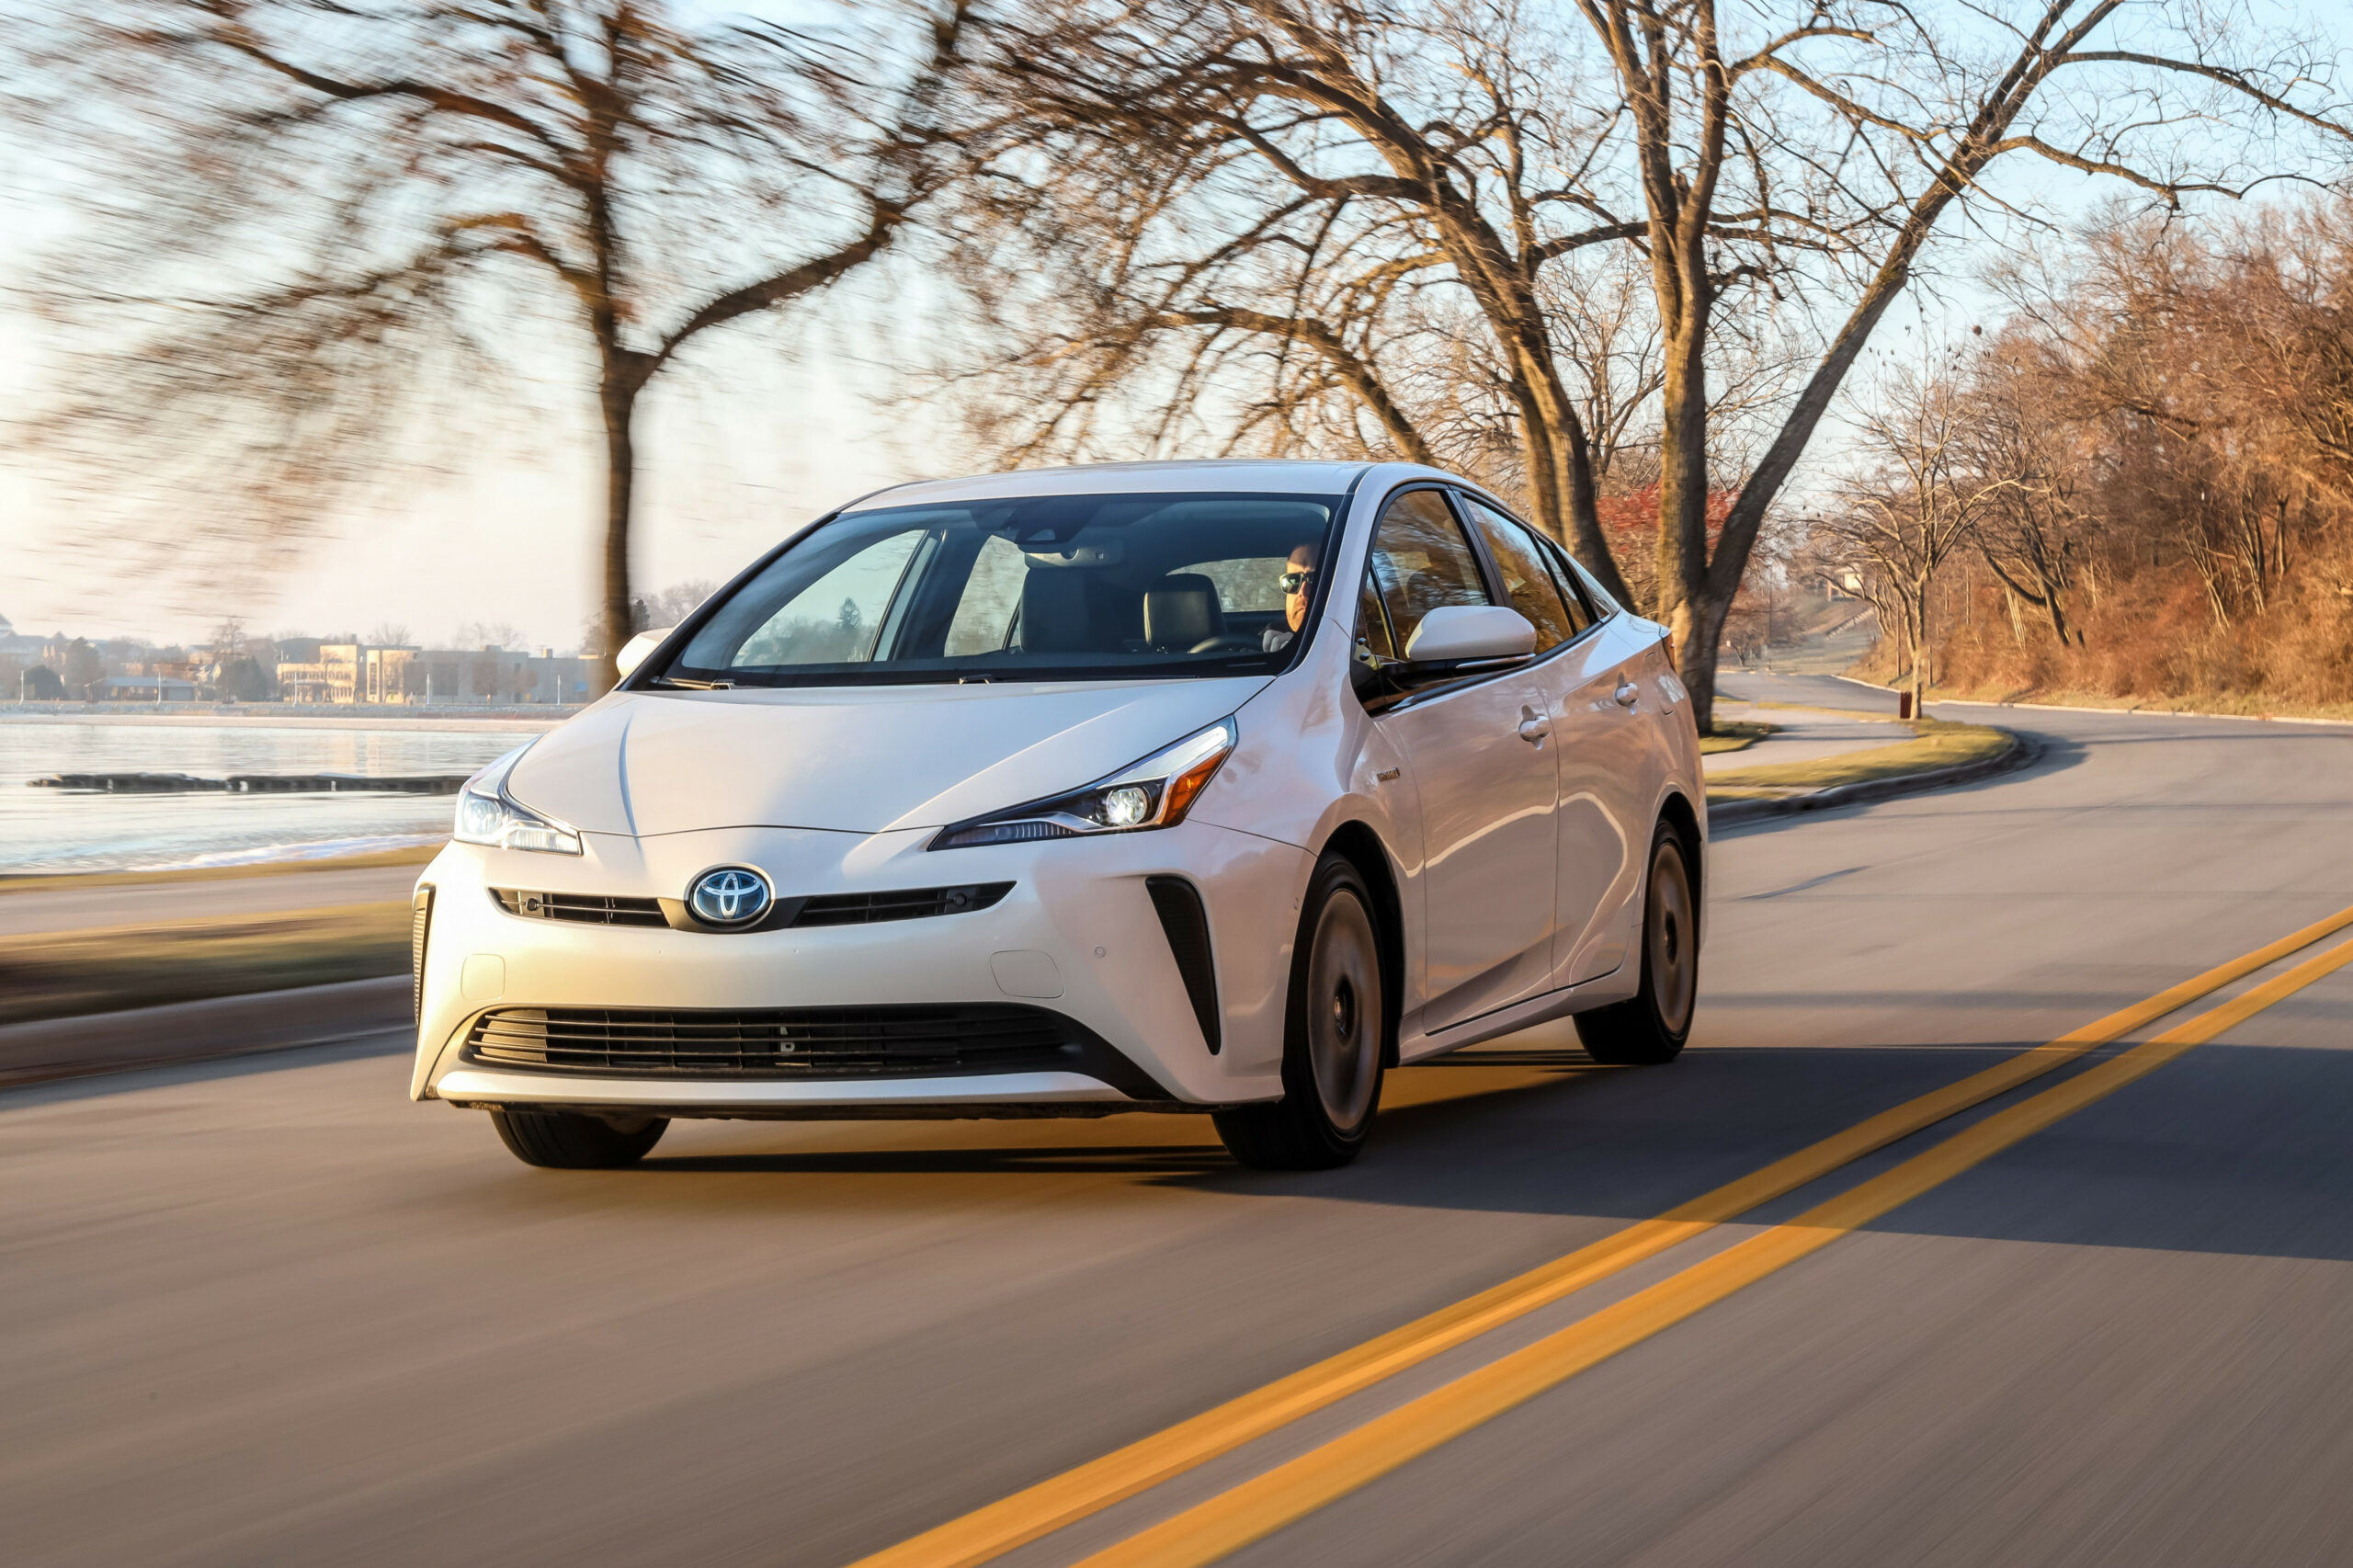 12 Toyota Prius Review, Pricing, and Specs